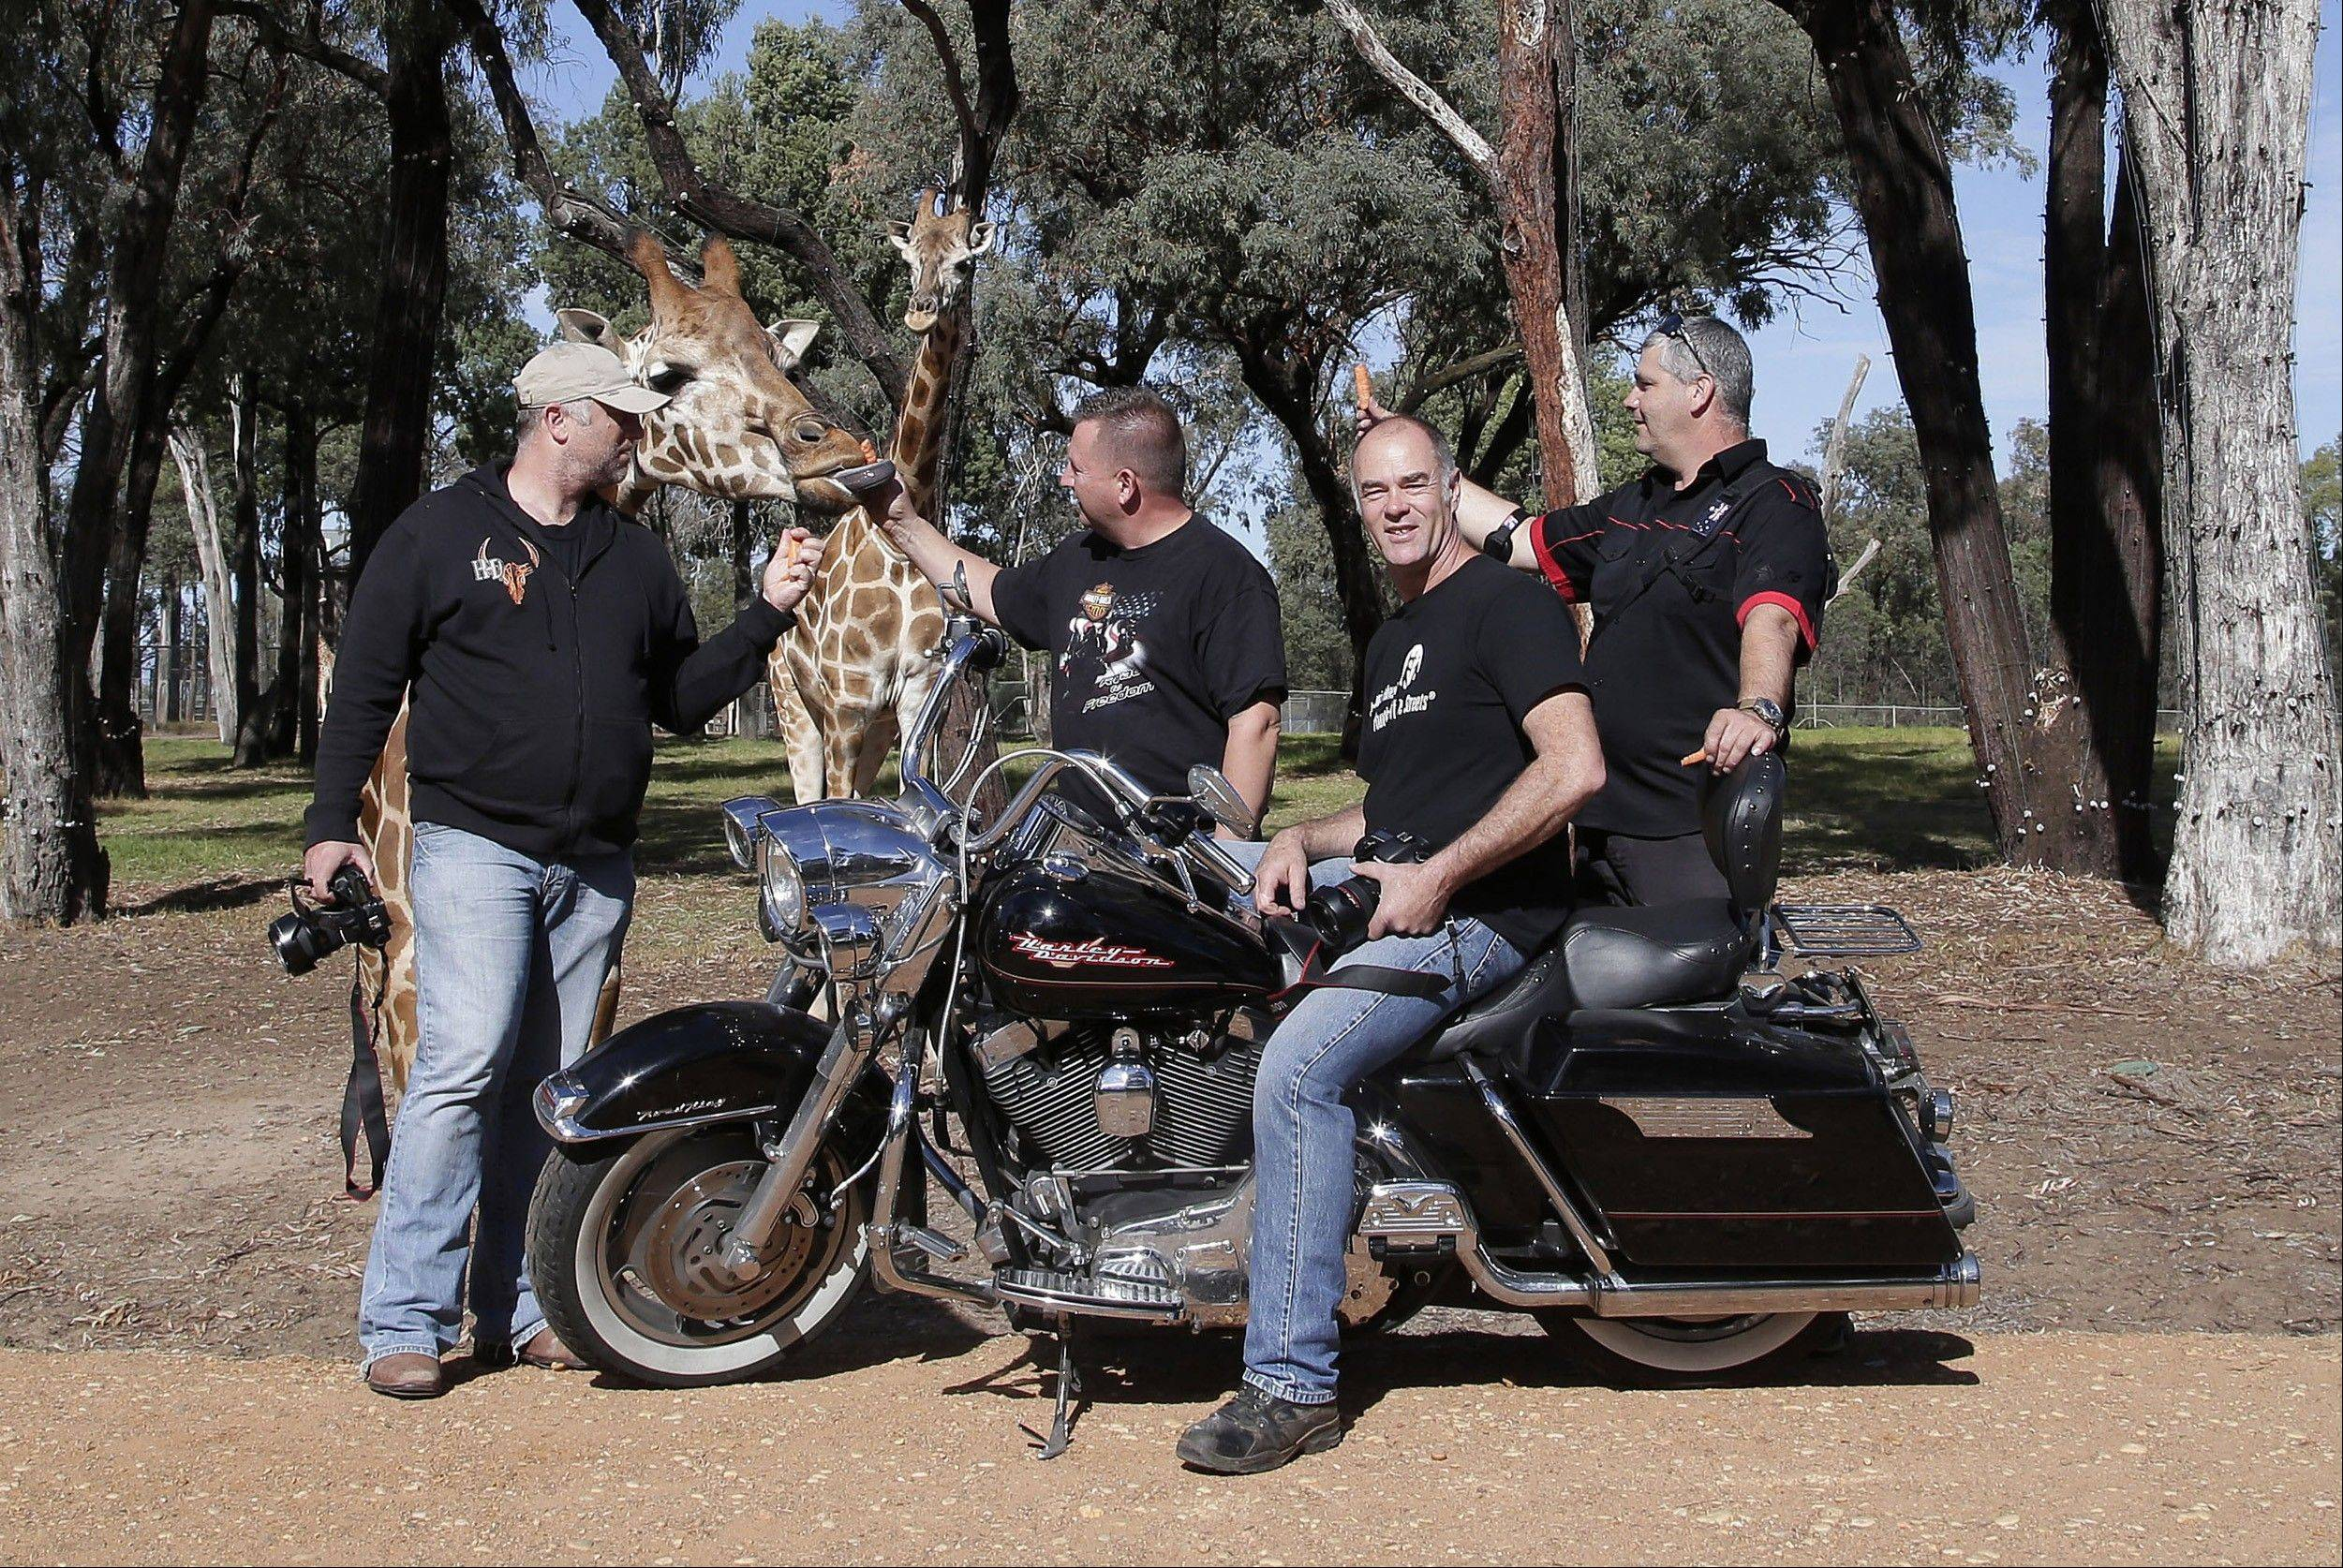 Motorcycle tourists, from left, Stefan Hersee, Glenn Nicholls, John Roe and Rob Griffith feed giraffes at Taronga Western Plains Zoo in Dubbo.